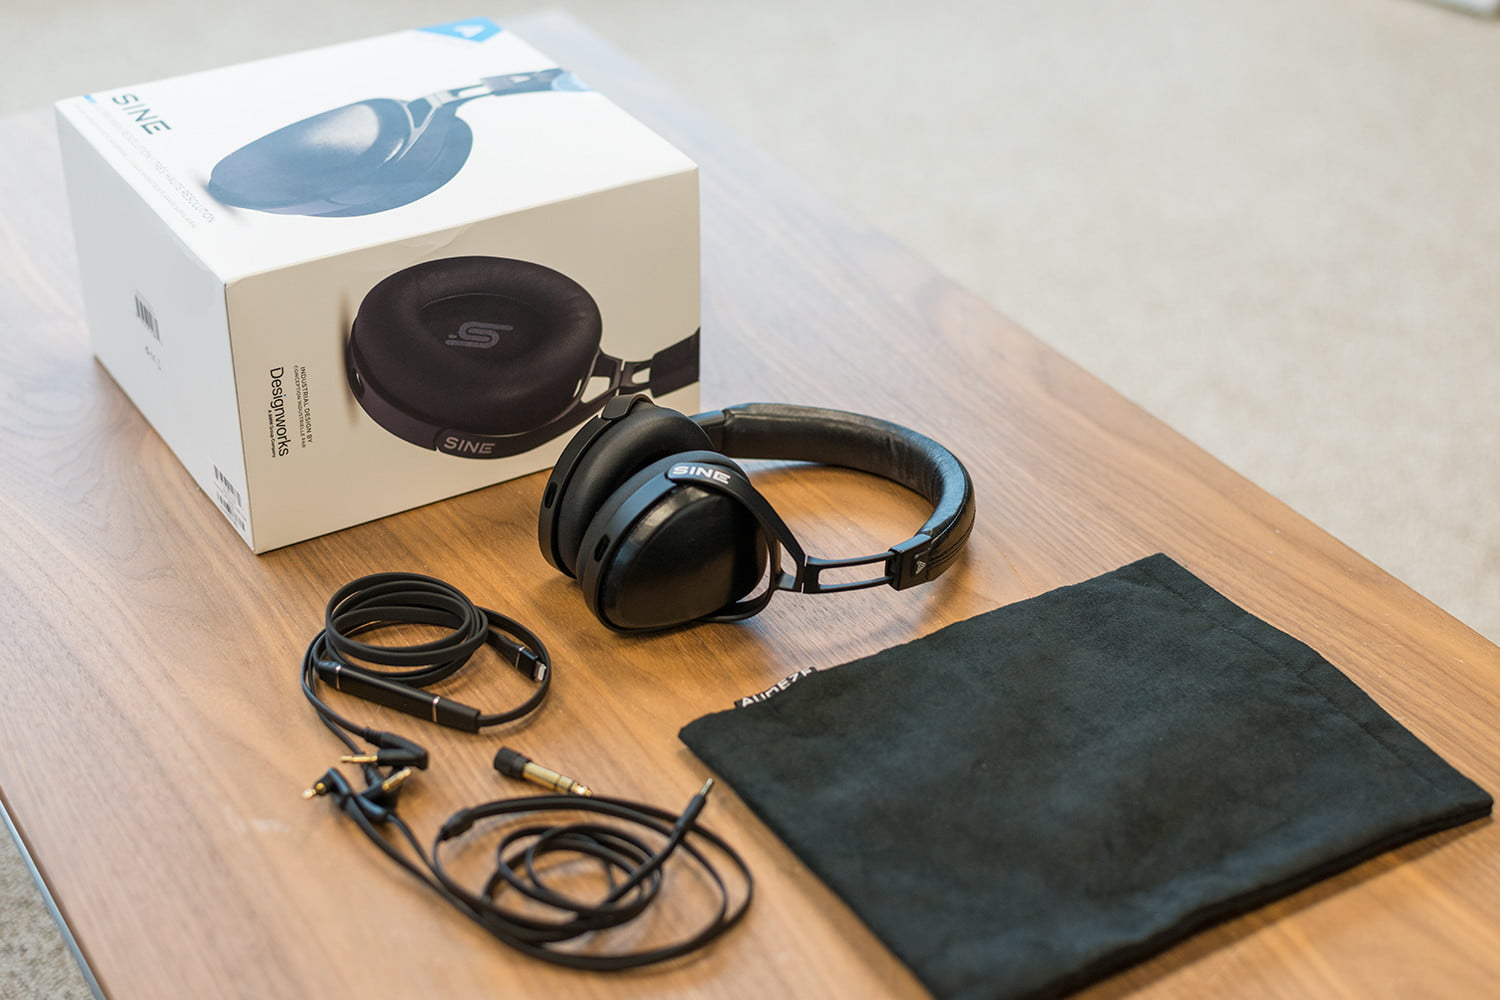 c62c5a669ce Audeze Sine. Those who opt to add the $50 Lightning cable (dubbed the Cipher),  will find it packed in a separate box, identical to its sibling save for a  ...